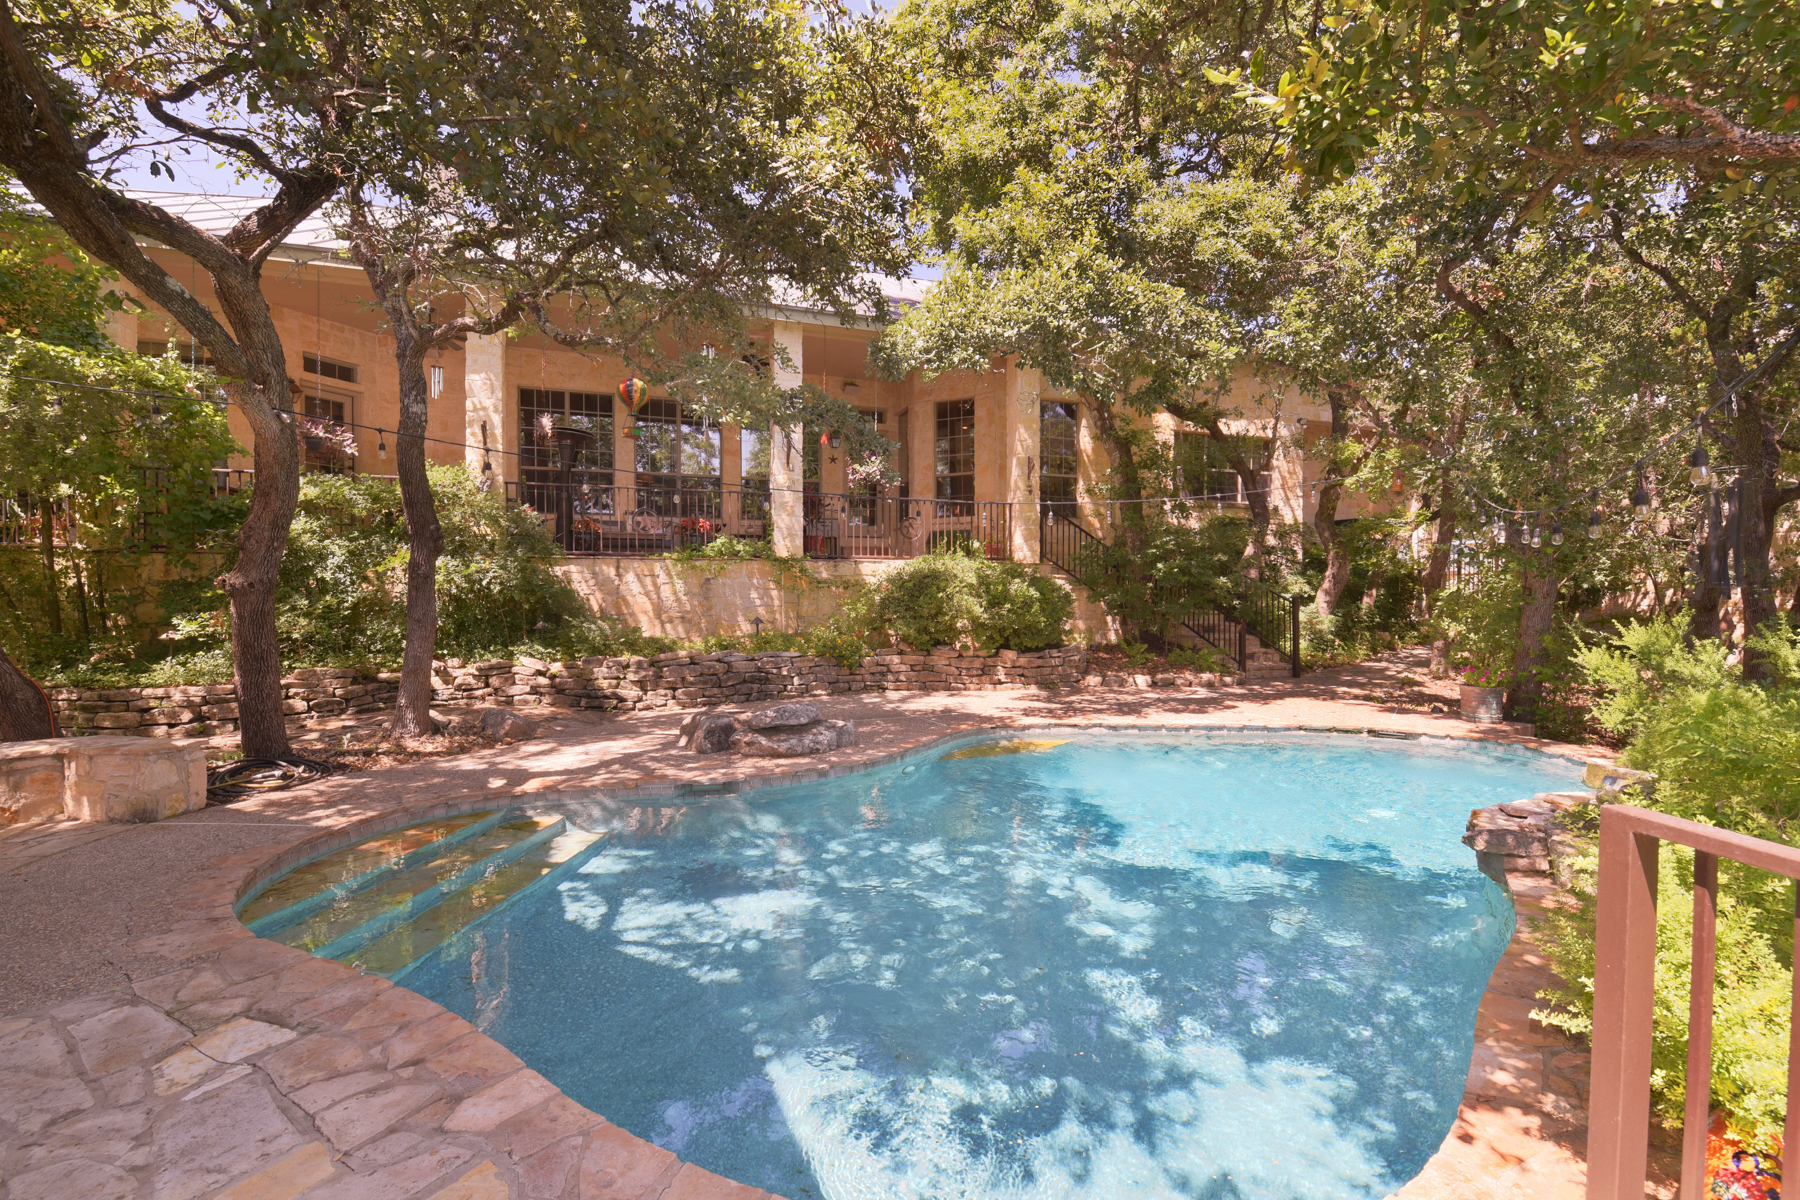 Additional photo for property listing at Breathtaking Gem in The Highlands 9 Braeburn Ct Bulverde, Texas 78163 United States